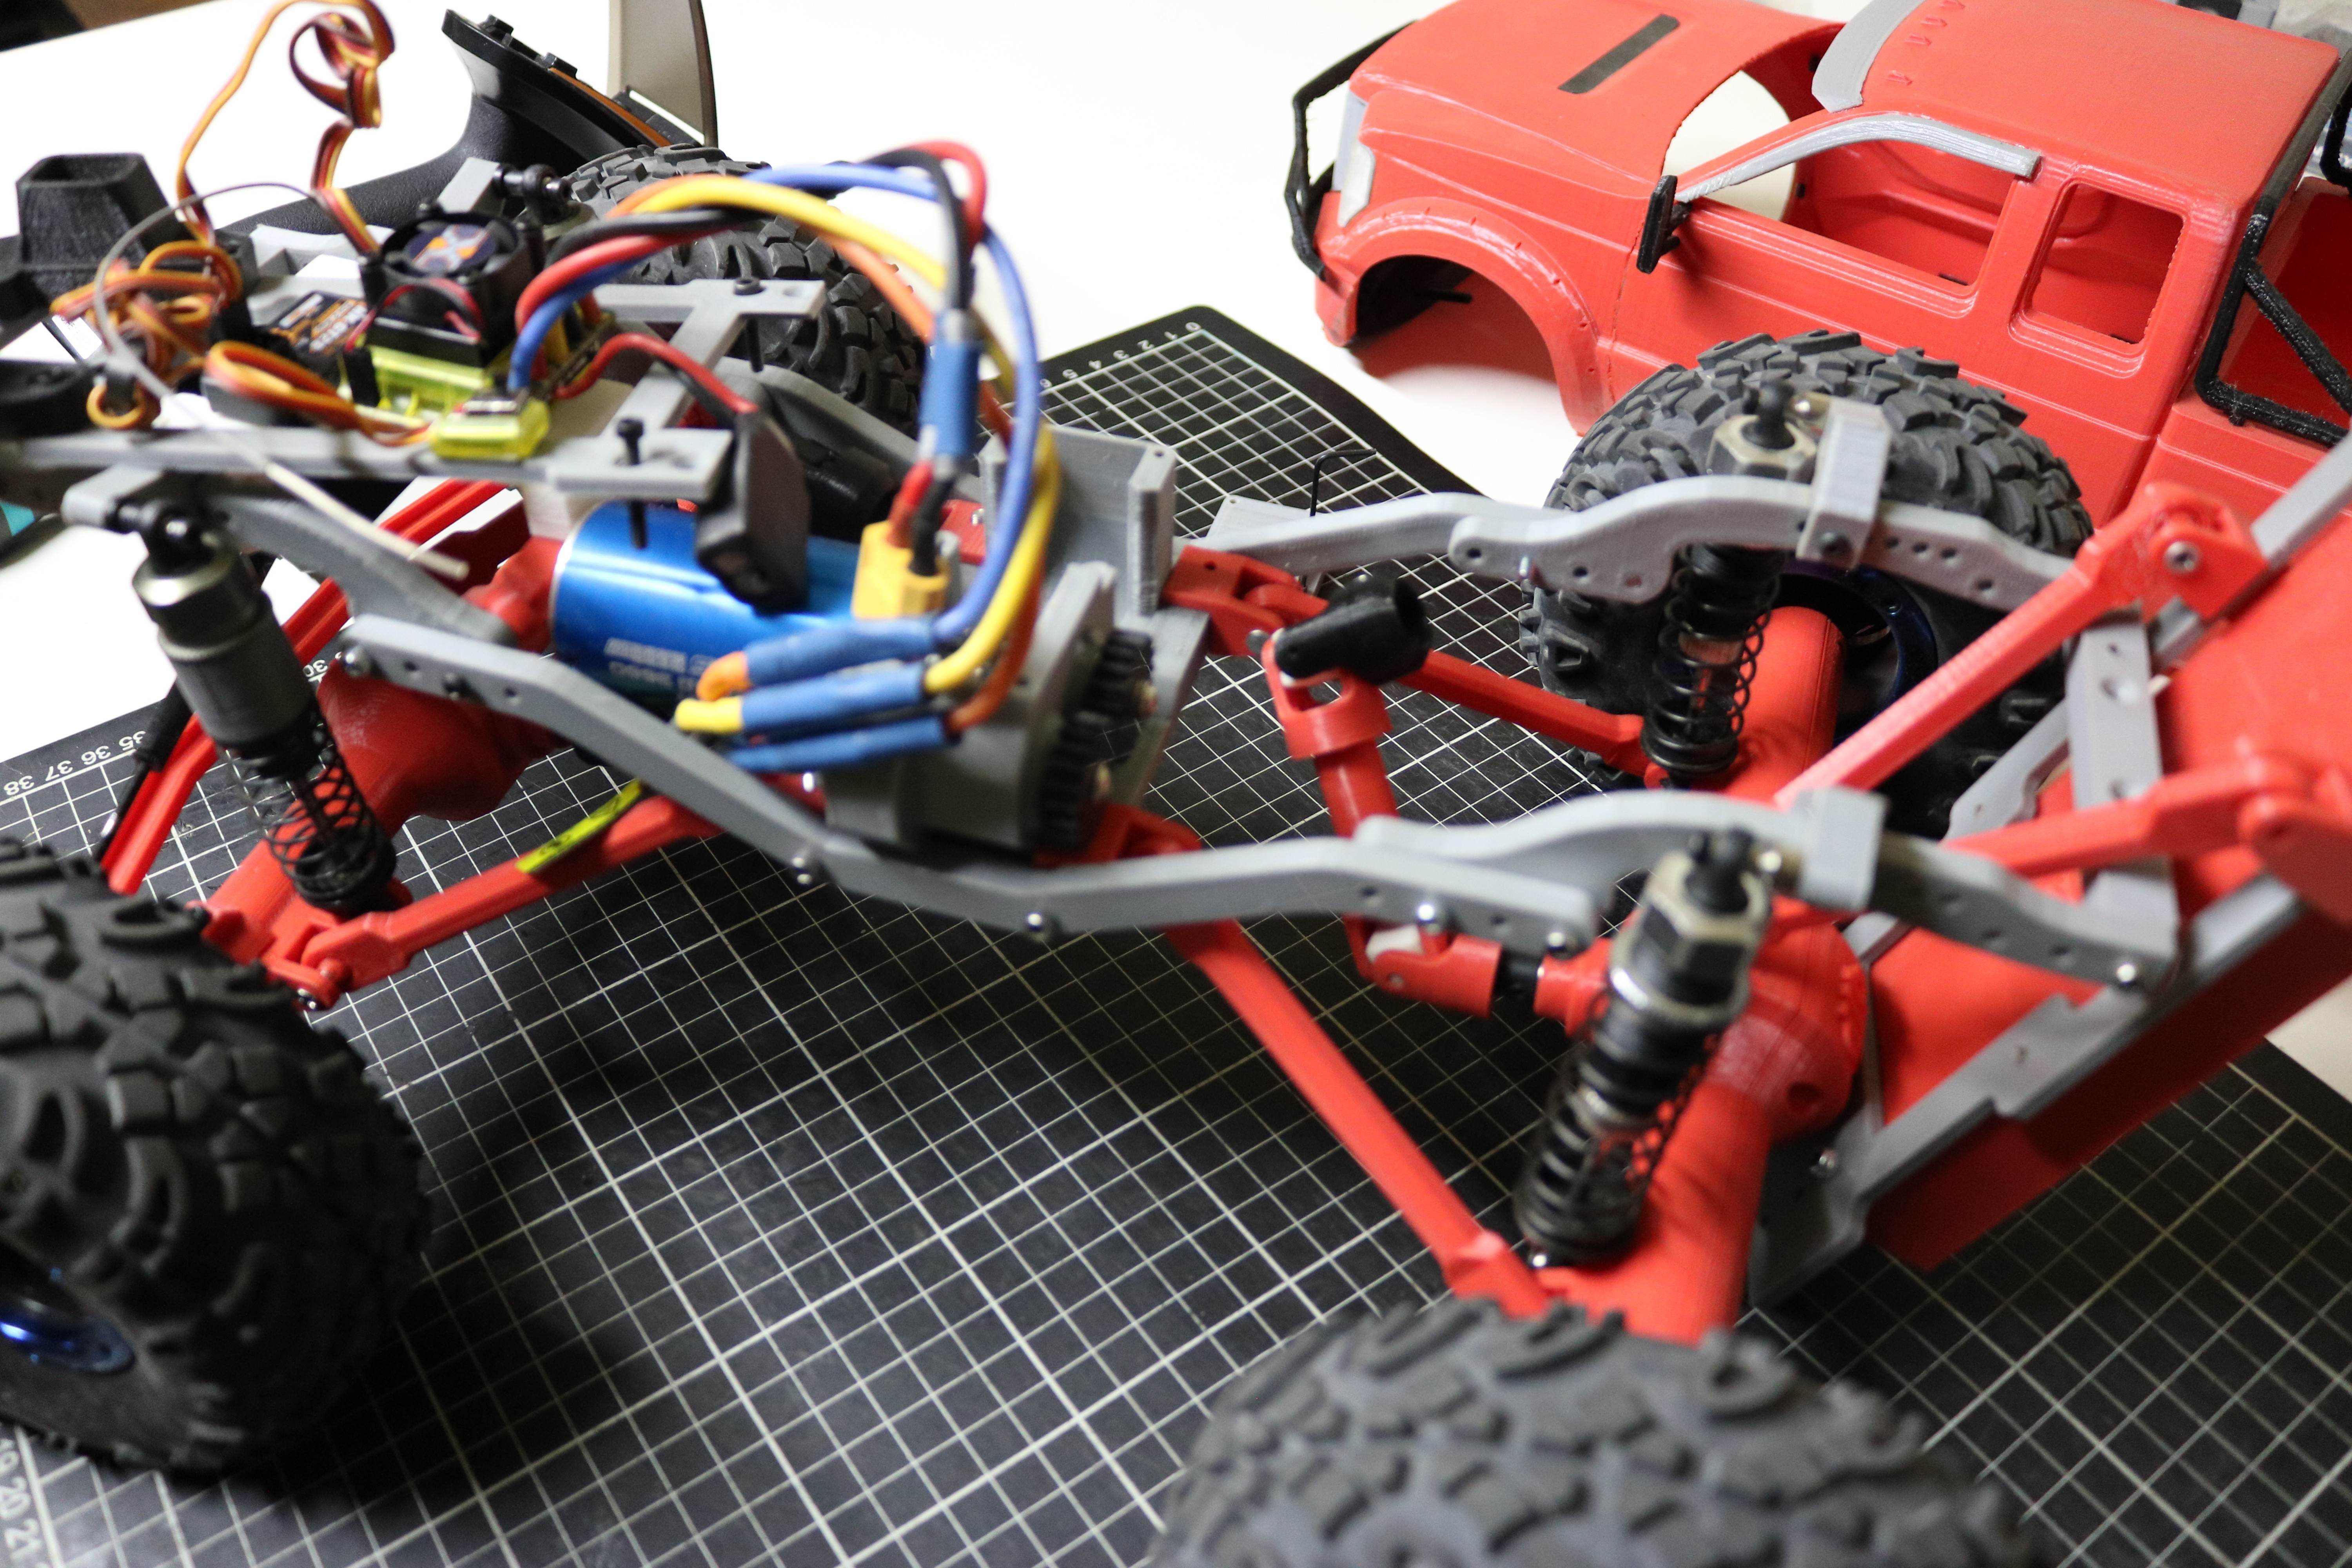 IMG_4950.JPG Download STL file MyRCCar 1/10 MTC Chassis Updated. Customizable chassis for Monster Truck, Crawler or Scale RC Car • 3D printer model, dlb5